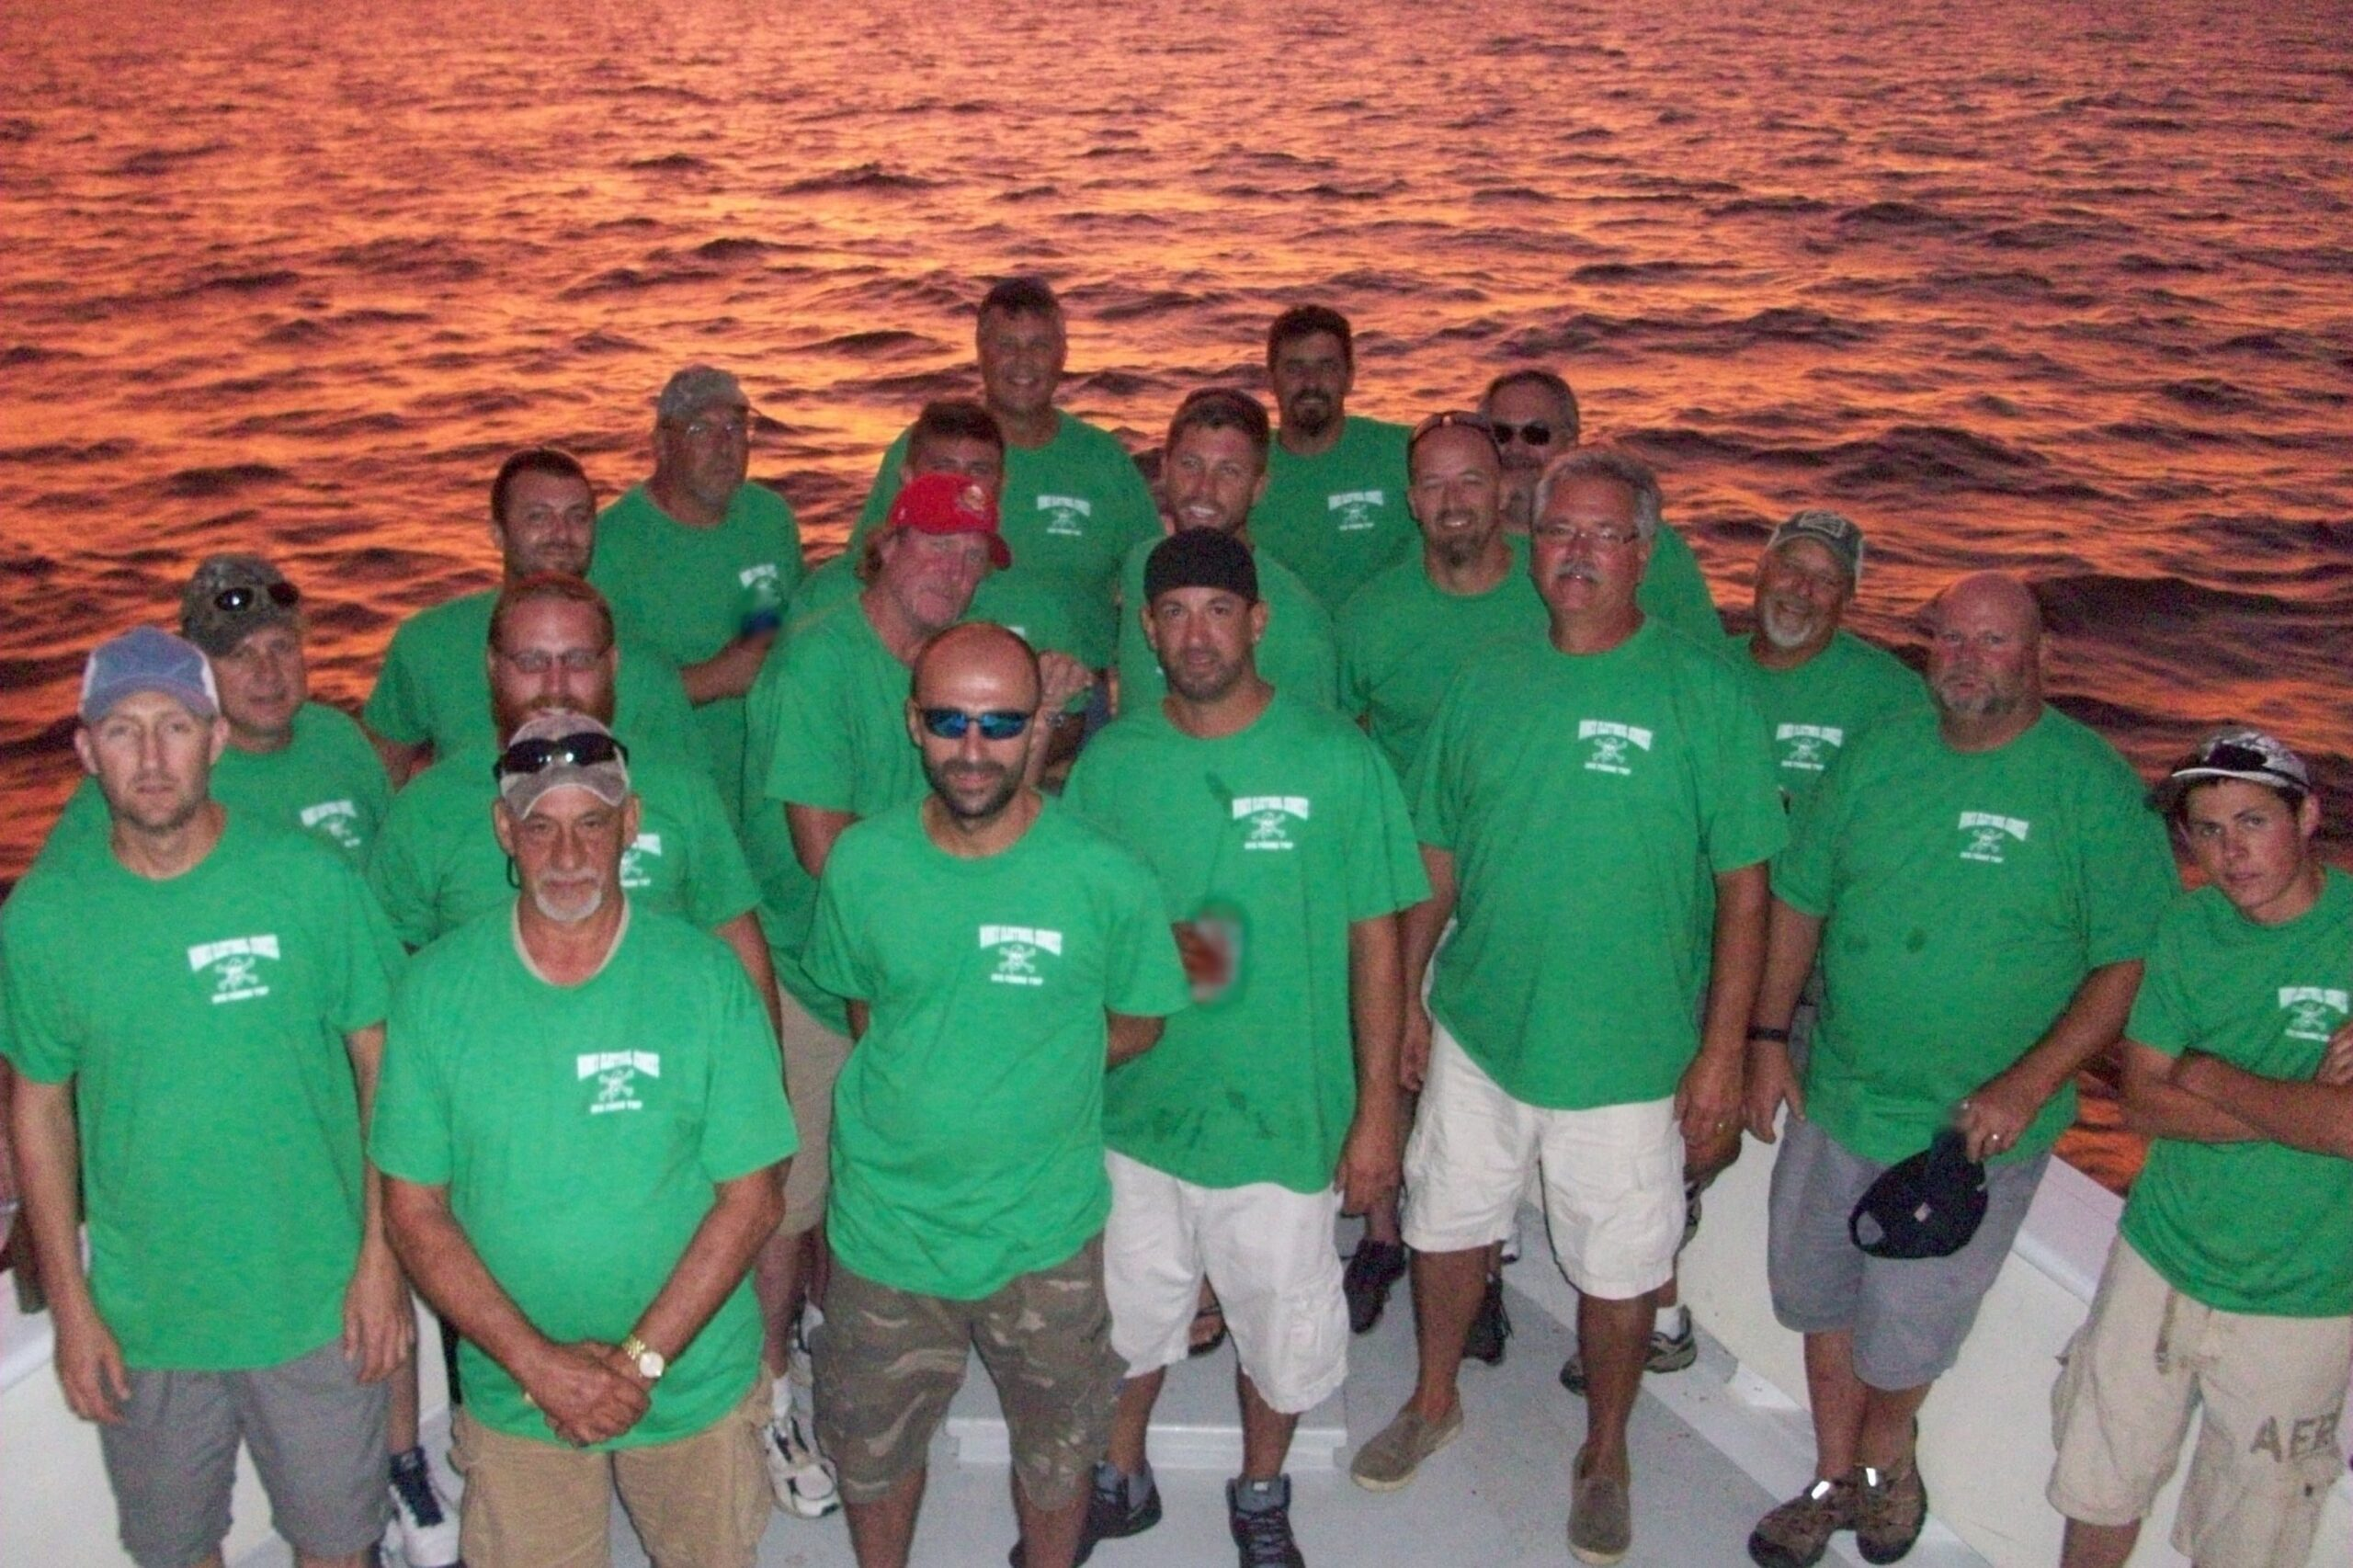 Fishing trip group picture